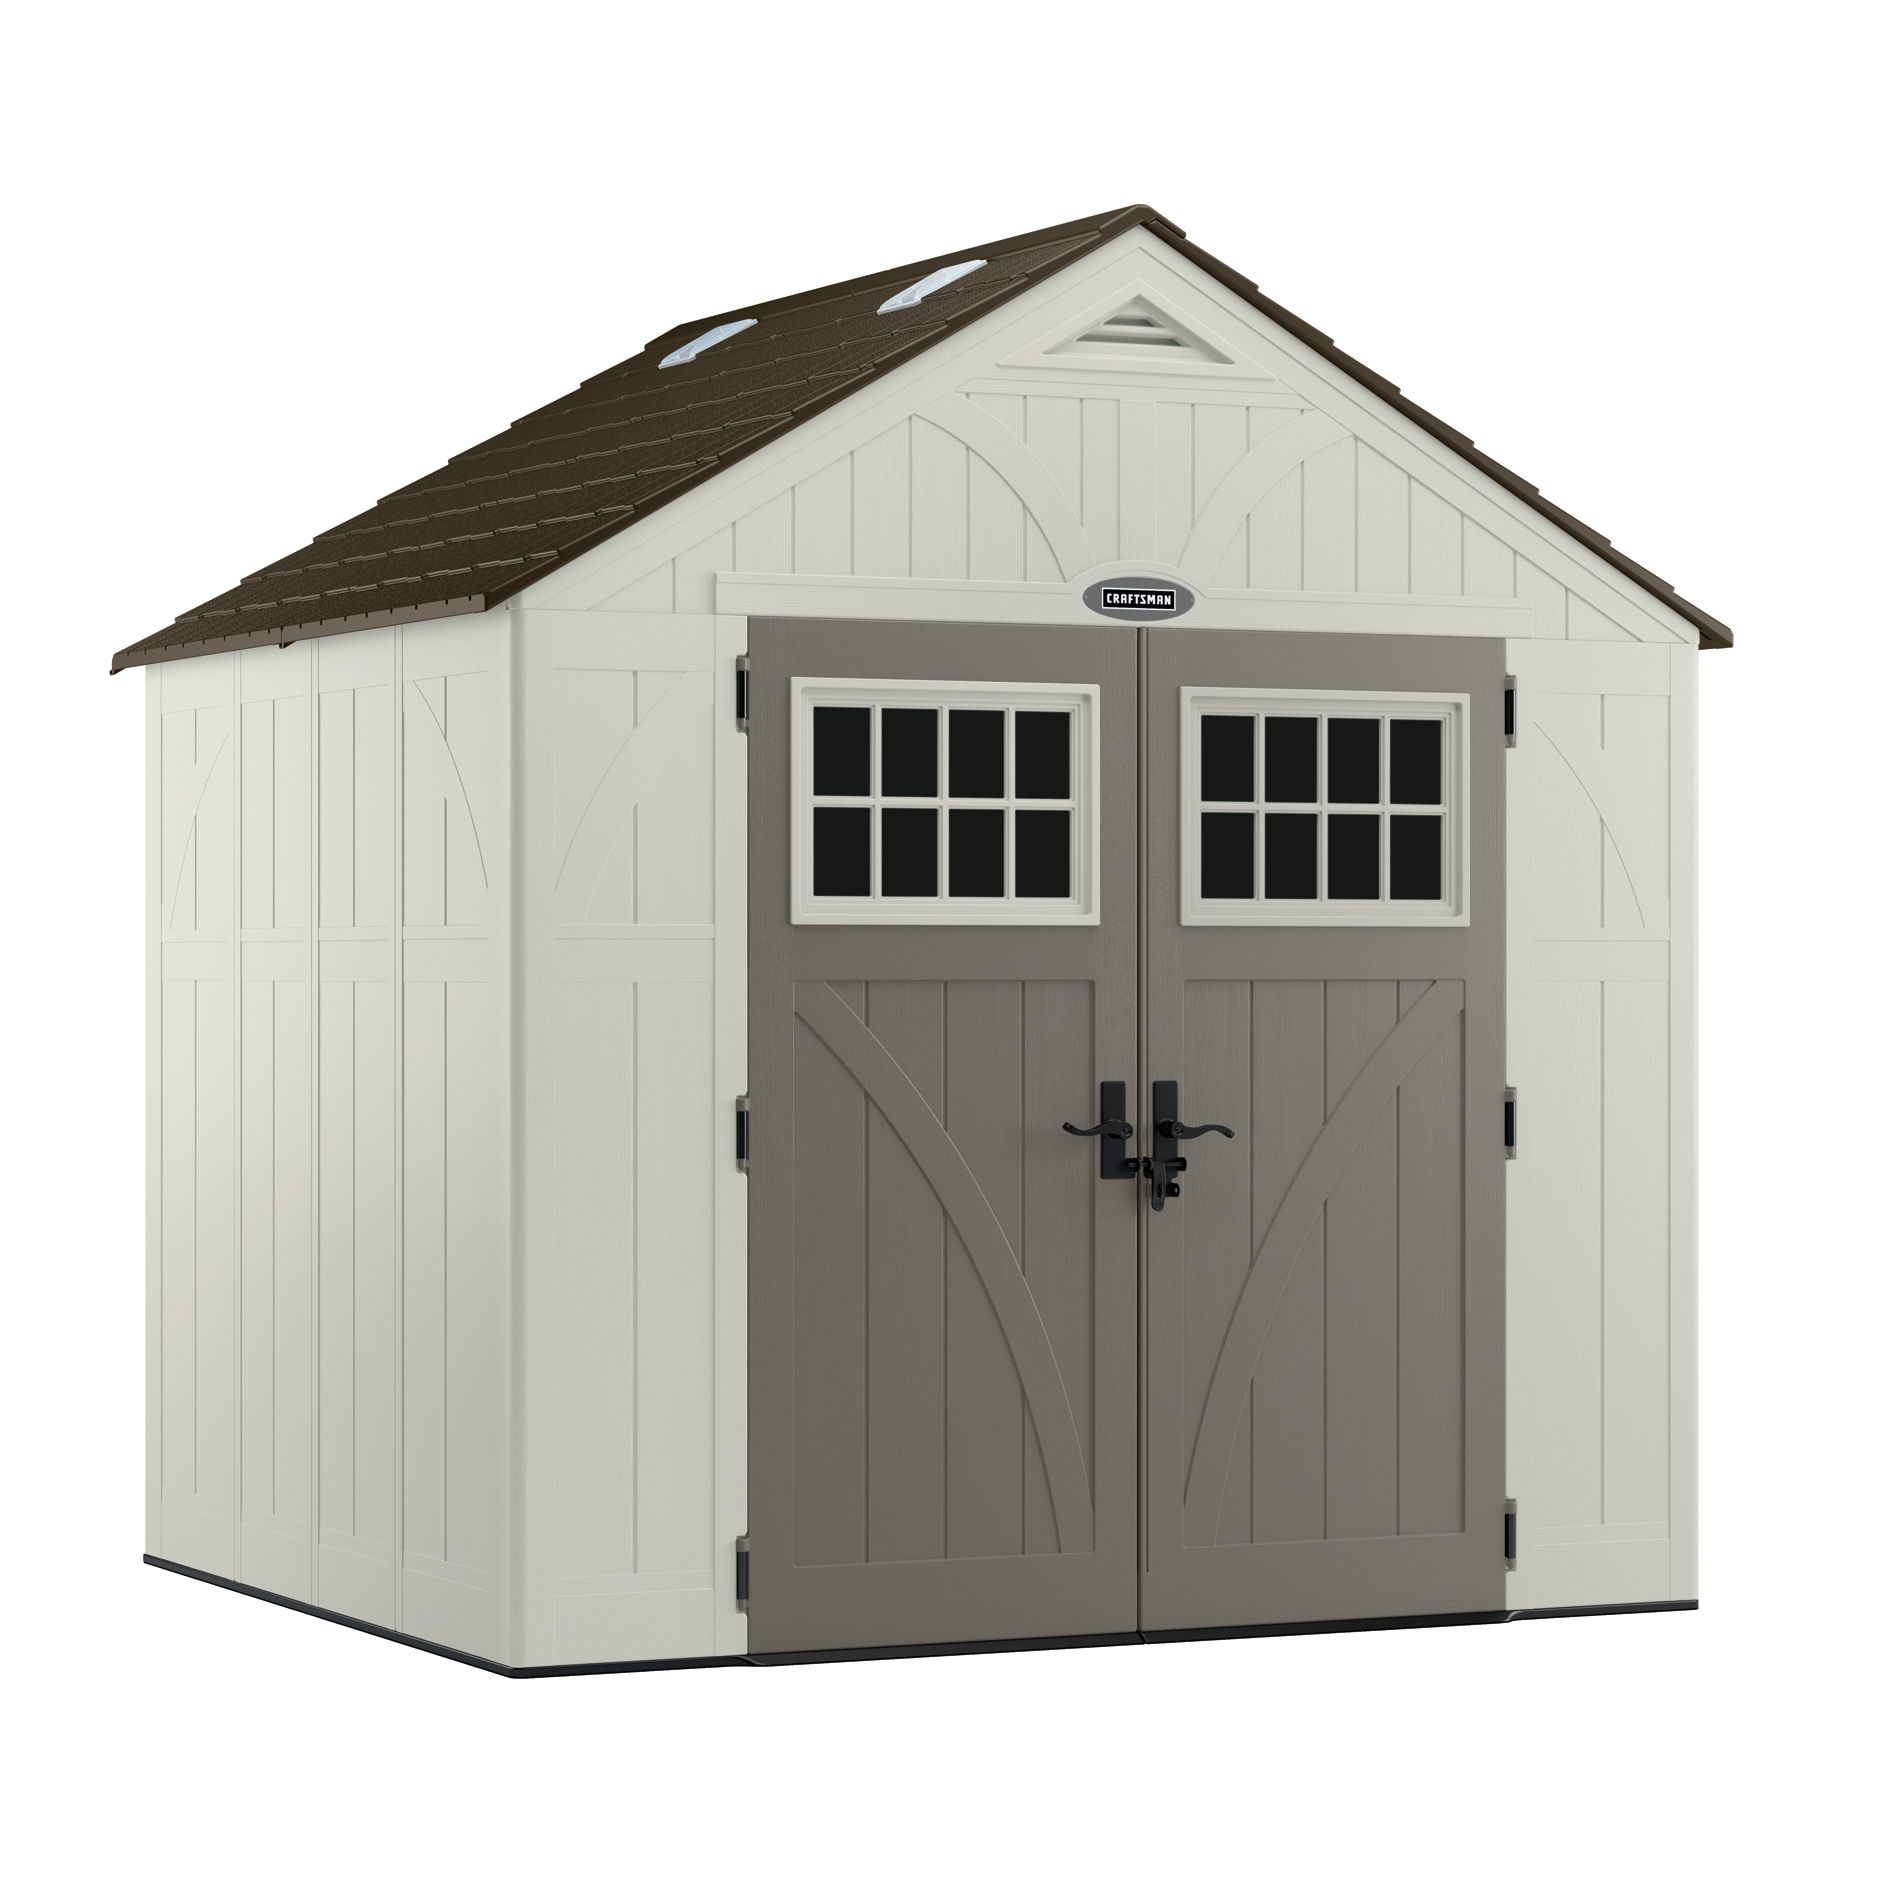 807 49 Craftsman 8 X 7 Storage Shed The Storage You Need At Sears Plastic Storage Sheds Suncast Sheds Building A Shed